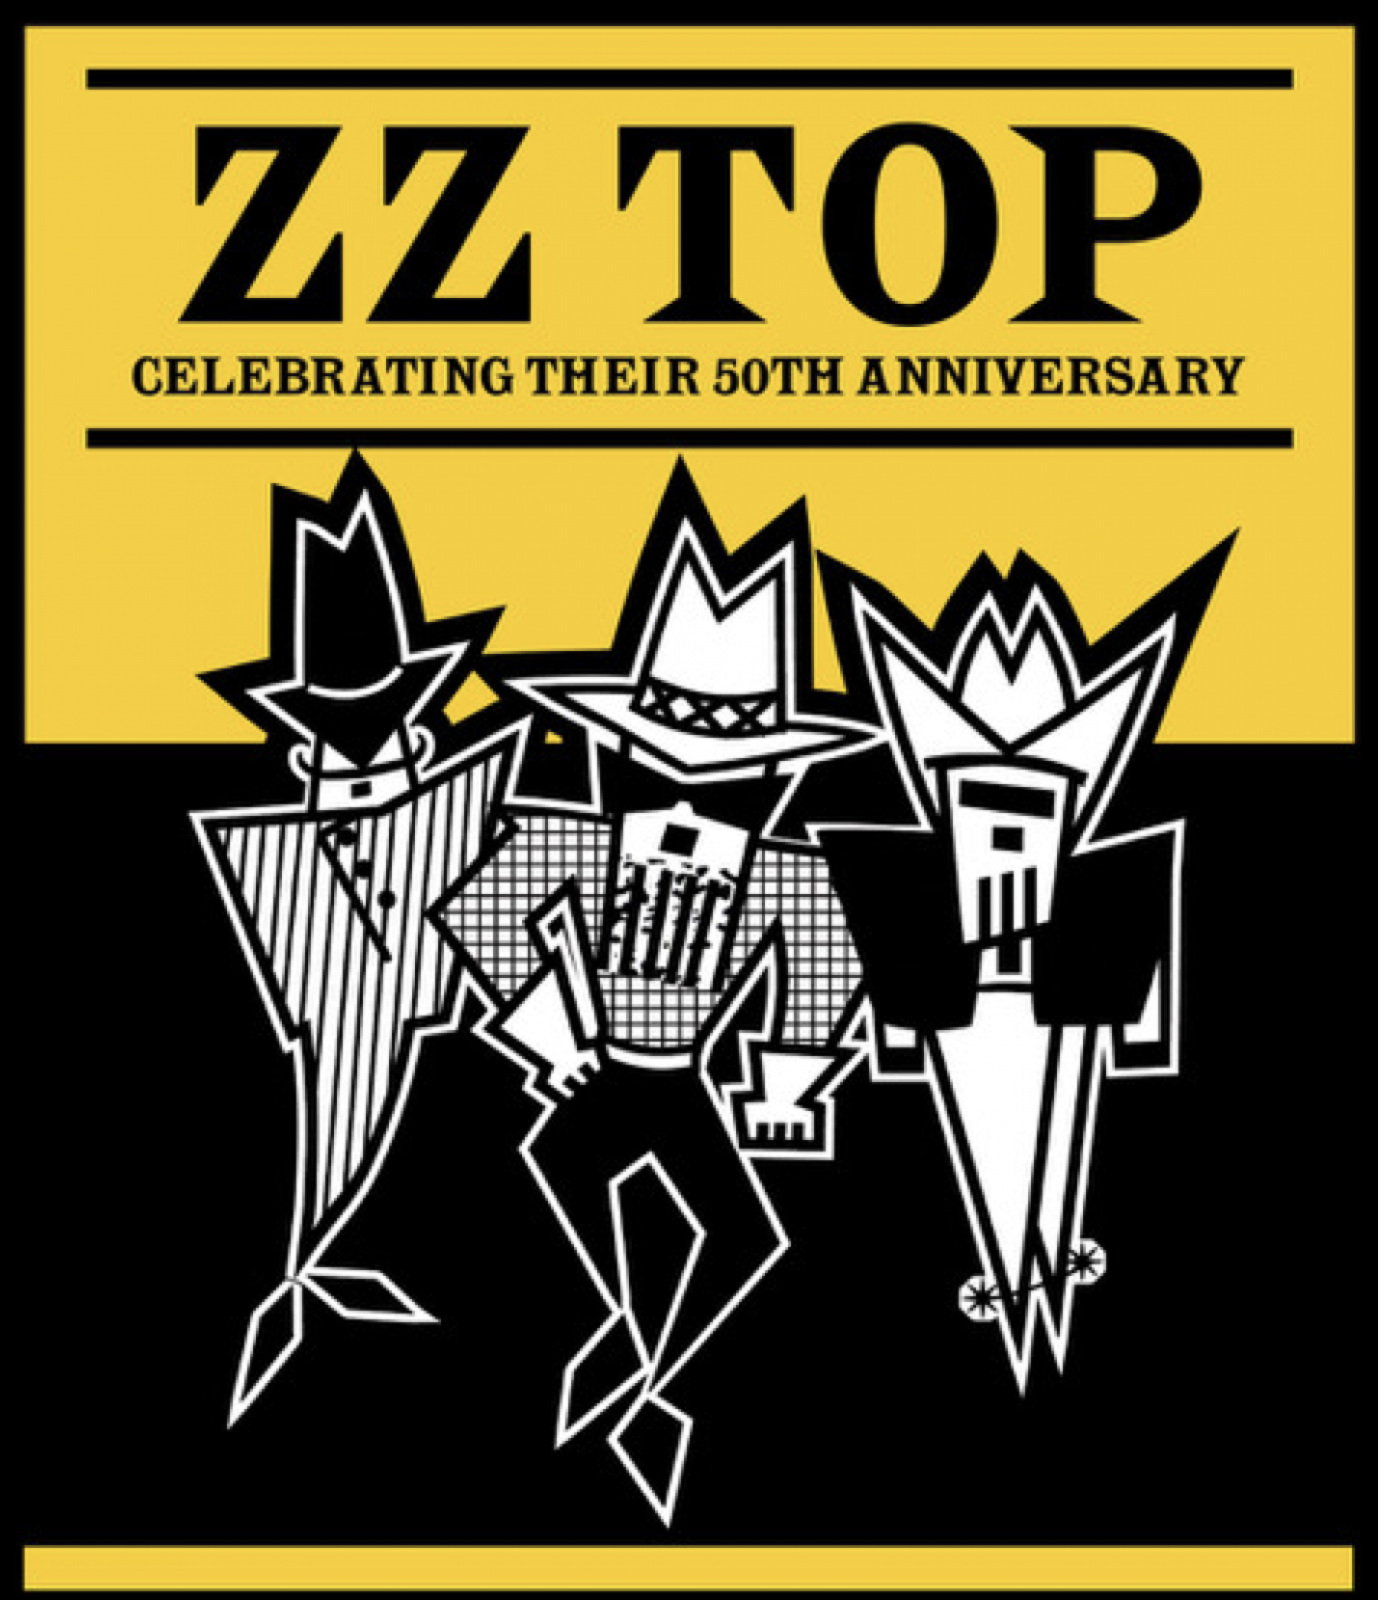 Zztop eliminator frontview clipart jpg black and white library Official Website   ZZ Top jpg black and white library